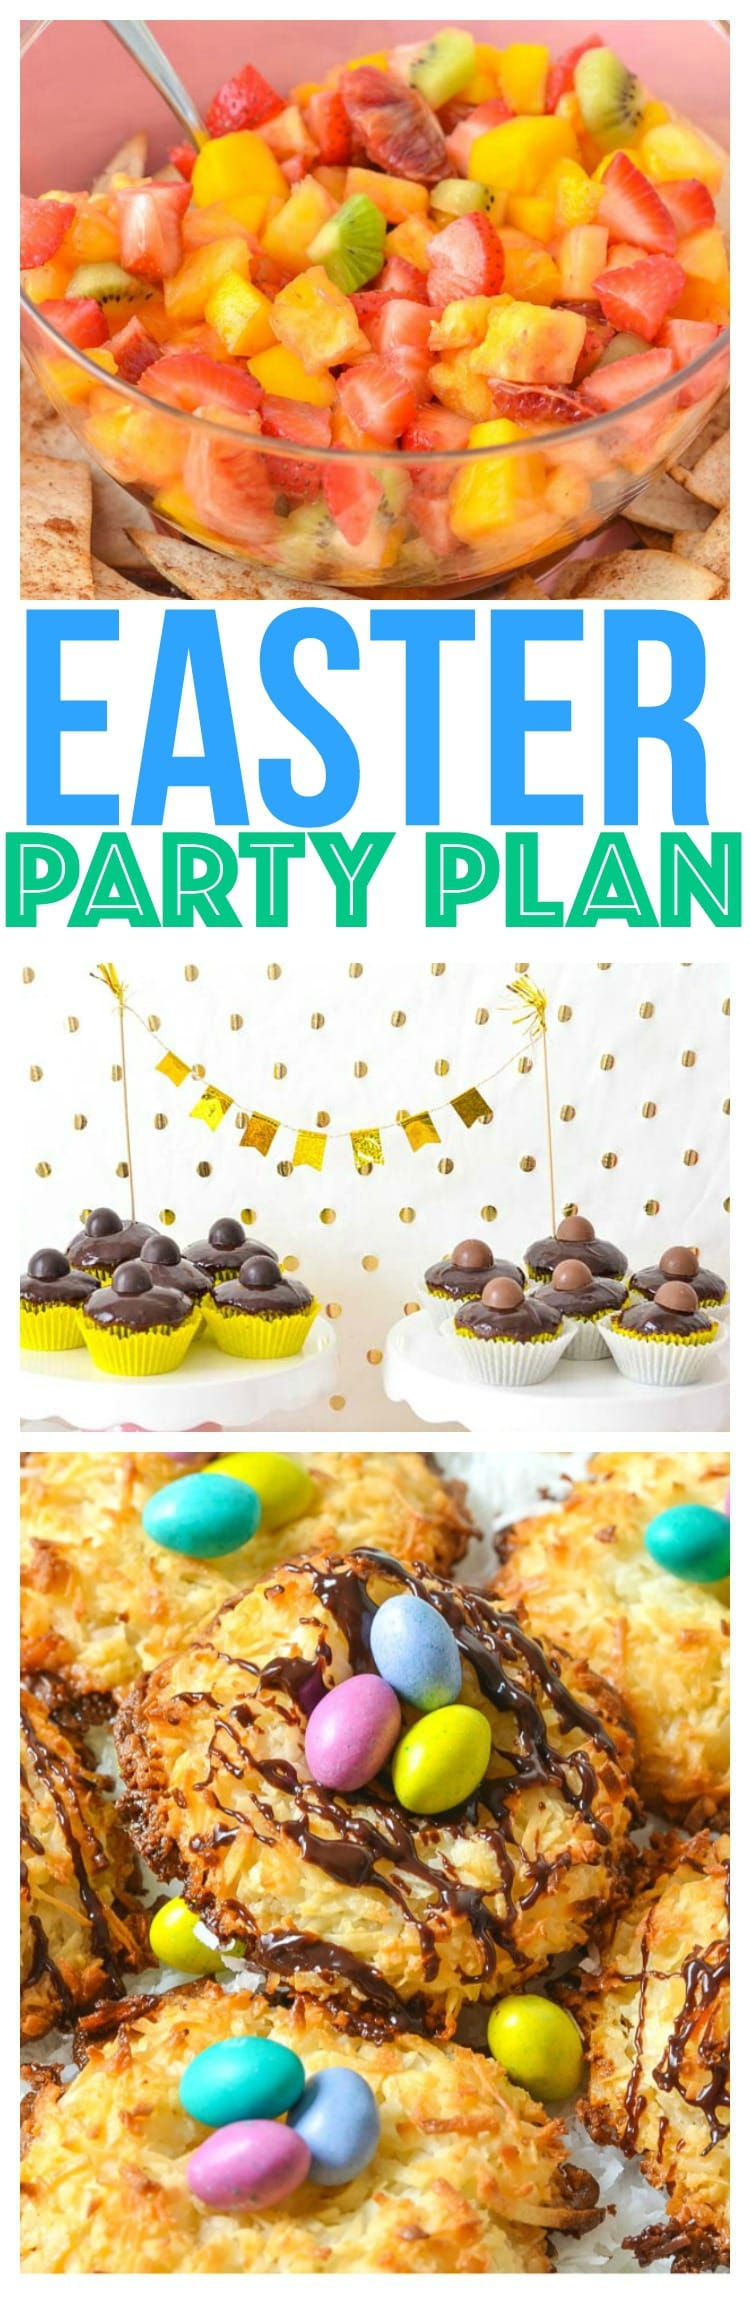 Easter Party Food Ideas Easter Recipes Dessert Easter Party Ideas Pascua chocolate cupcakes cocadas recipe blood orange lemonade fruit salsa